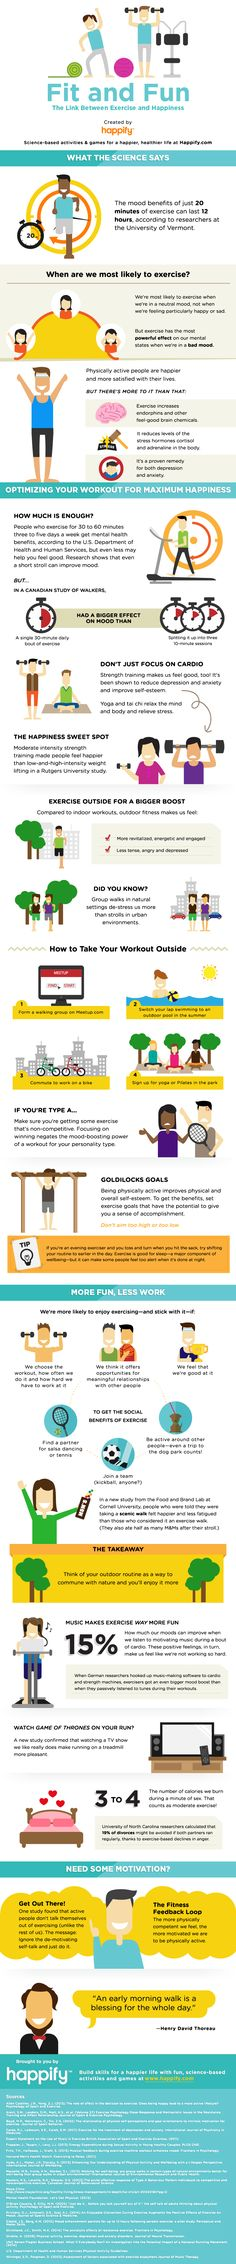 Infographic: Fit and Fun – The Link Between Exercise and Happiness | Vinland Center